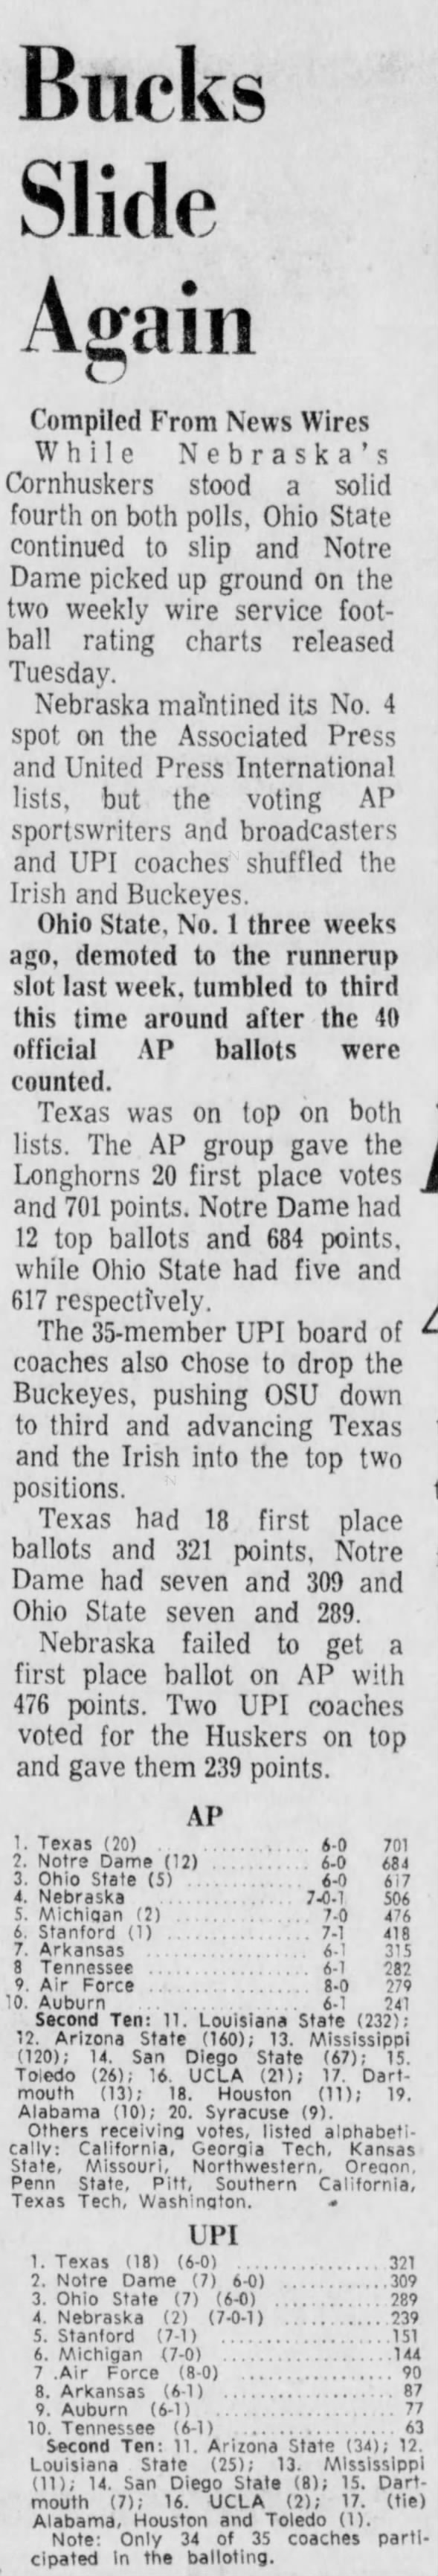 1970.11 College football polls, post-Colorado